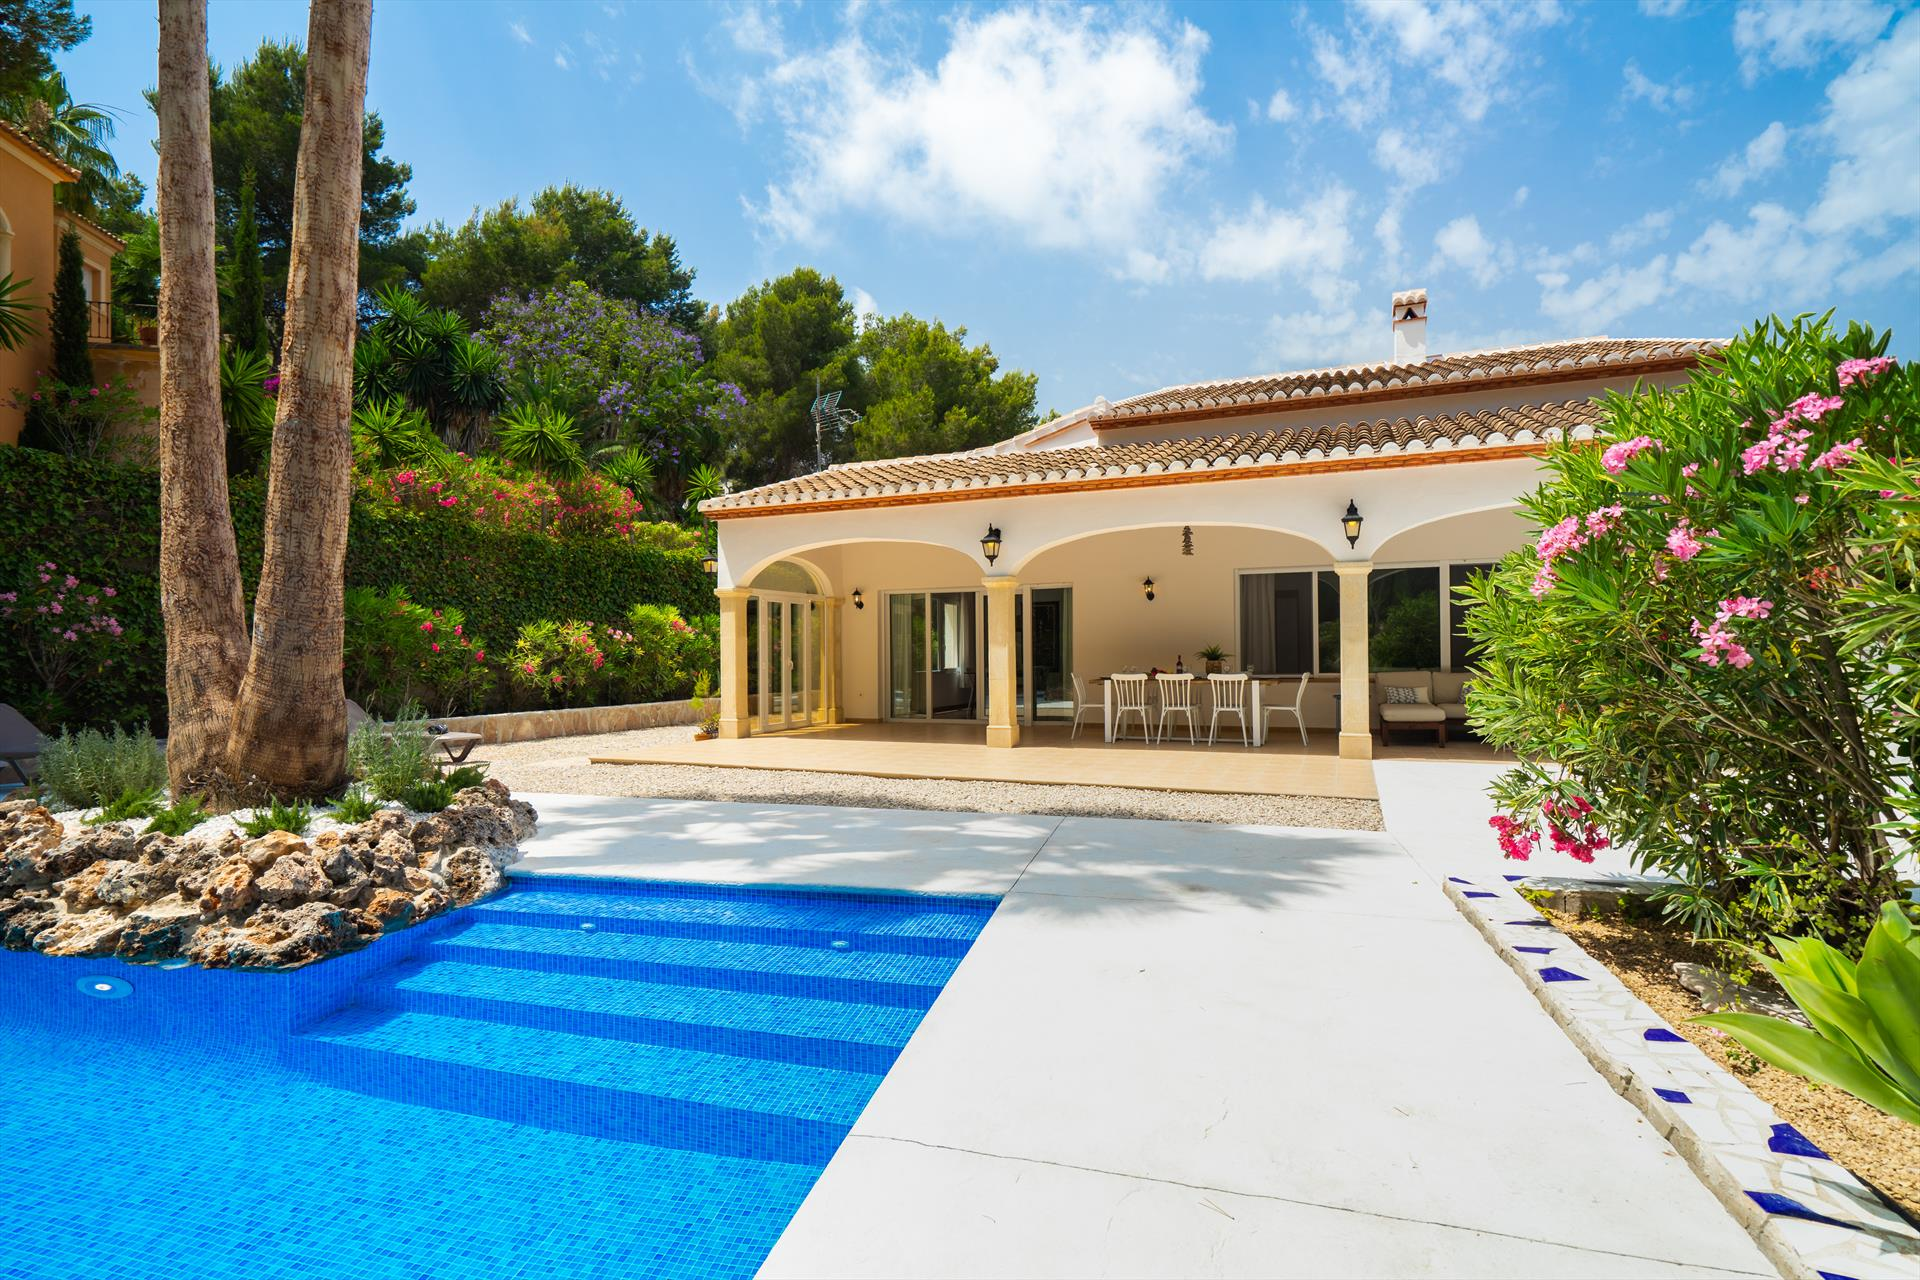 Alma 4 pax, Beautiful and comfortable villa in Javea, on the Costa Blanca, Spain  with private pool for 4 persons.....